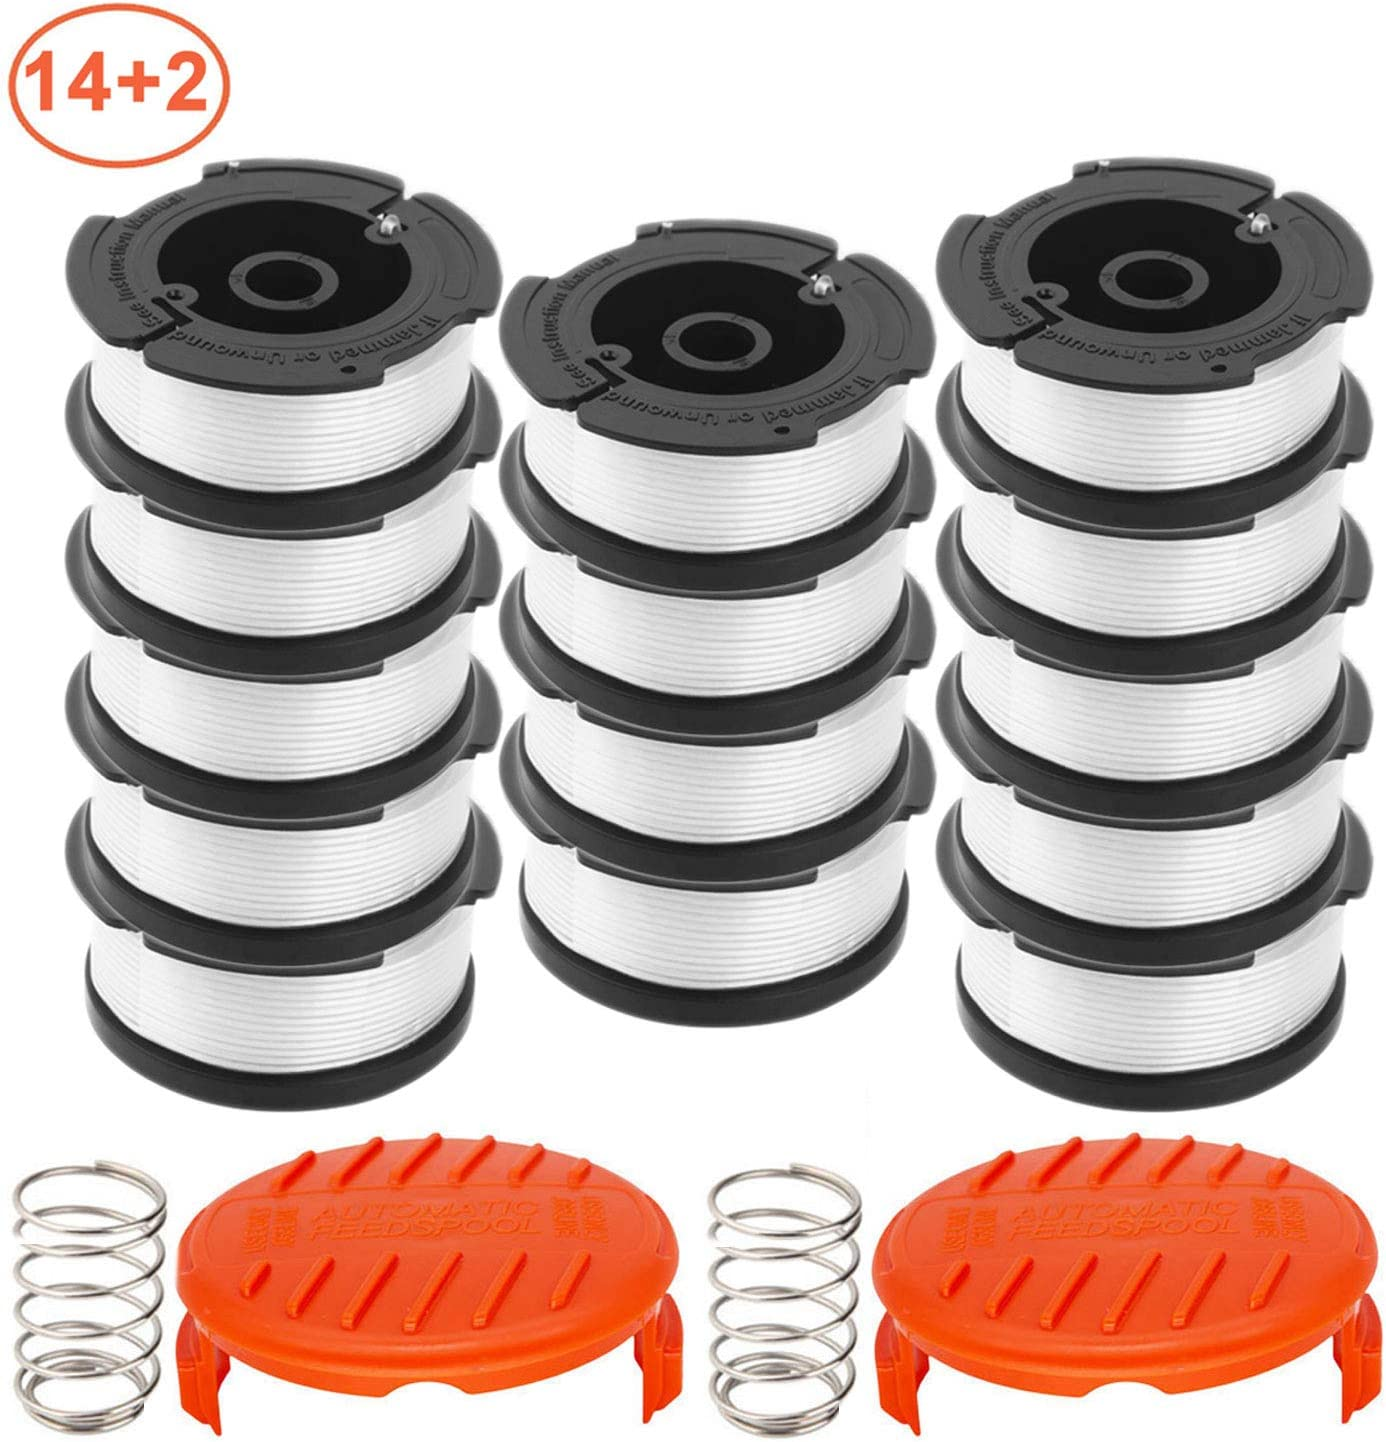 "RONGJU 16 Pack Weed Eater Replacement Parts for Black&Decker AF-100, 14 Pack 30ft 0.065"" String Trimmer Line Replacement Spools + 2 Pack RC-100-P Caps&Springs (14 Spools + 2 Caps + 2 Springs)"